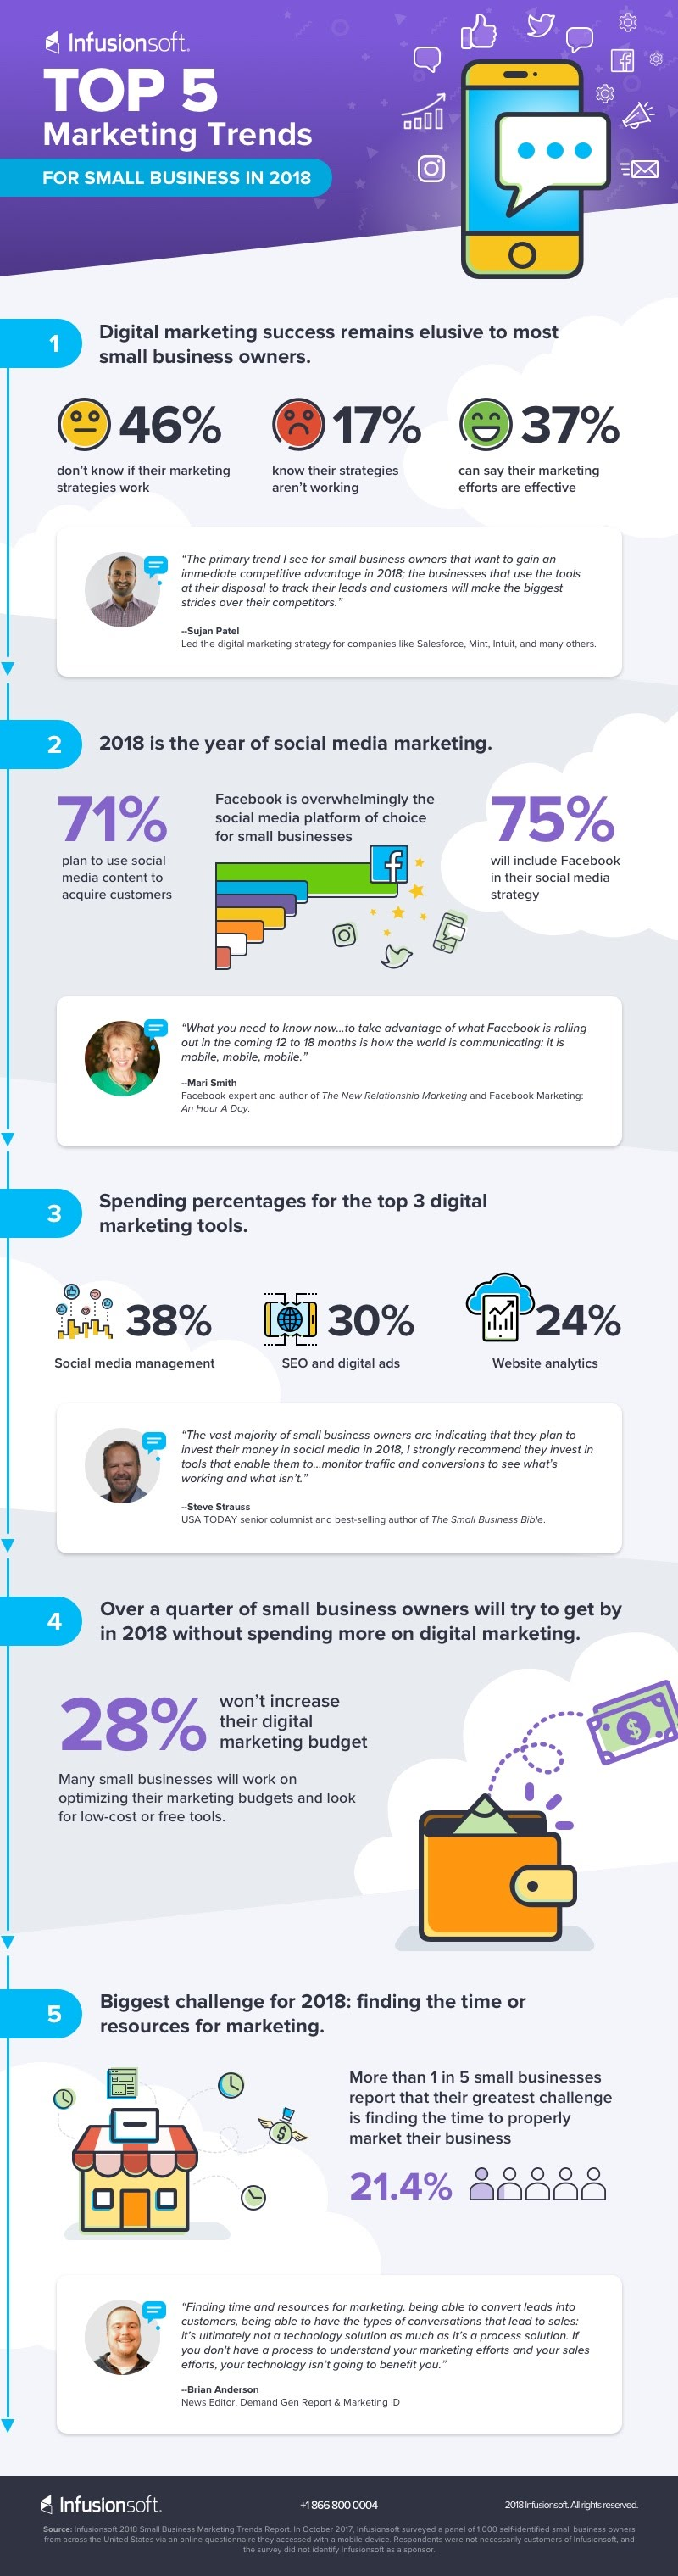 Top 5 Marketing Trends for Small Business in 2018 [Infographic]